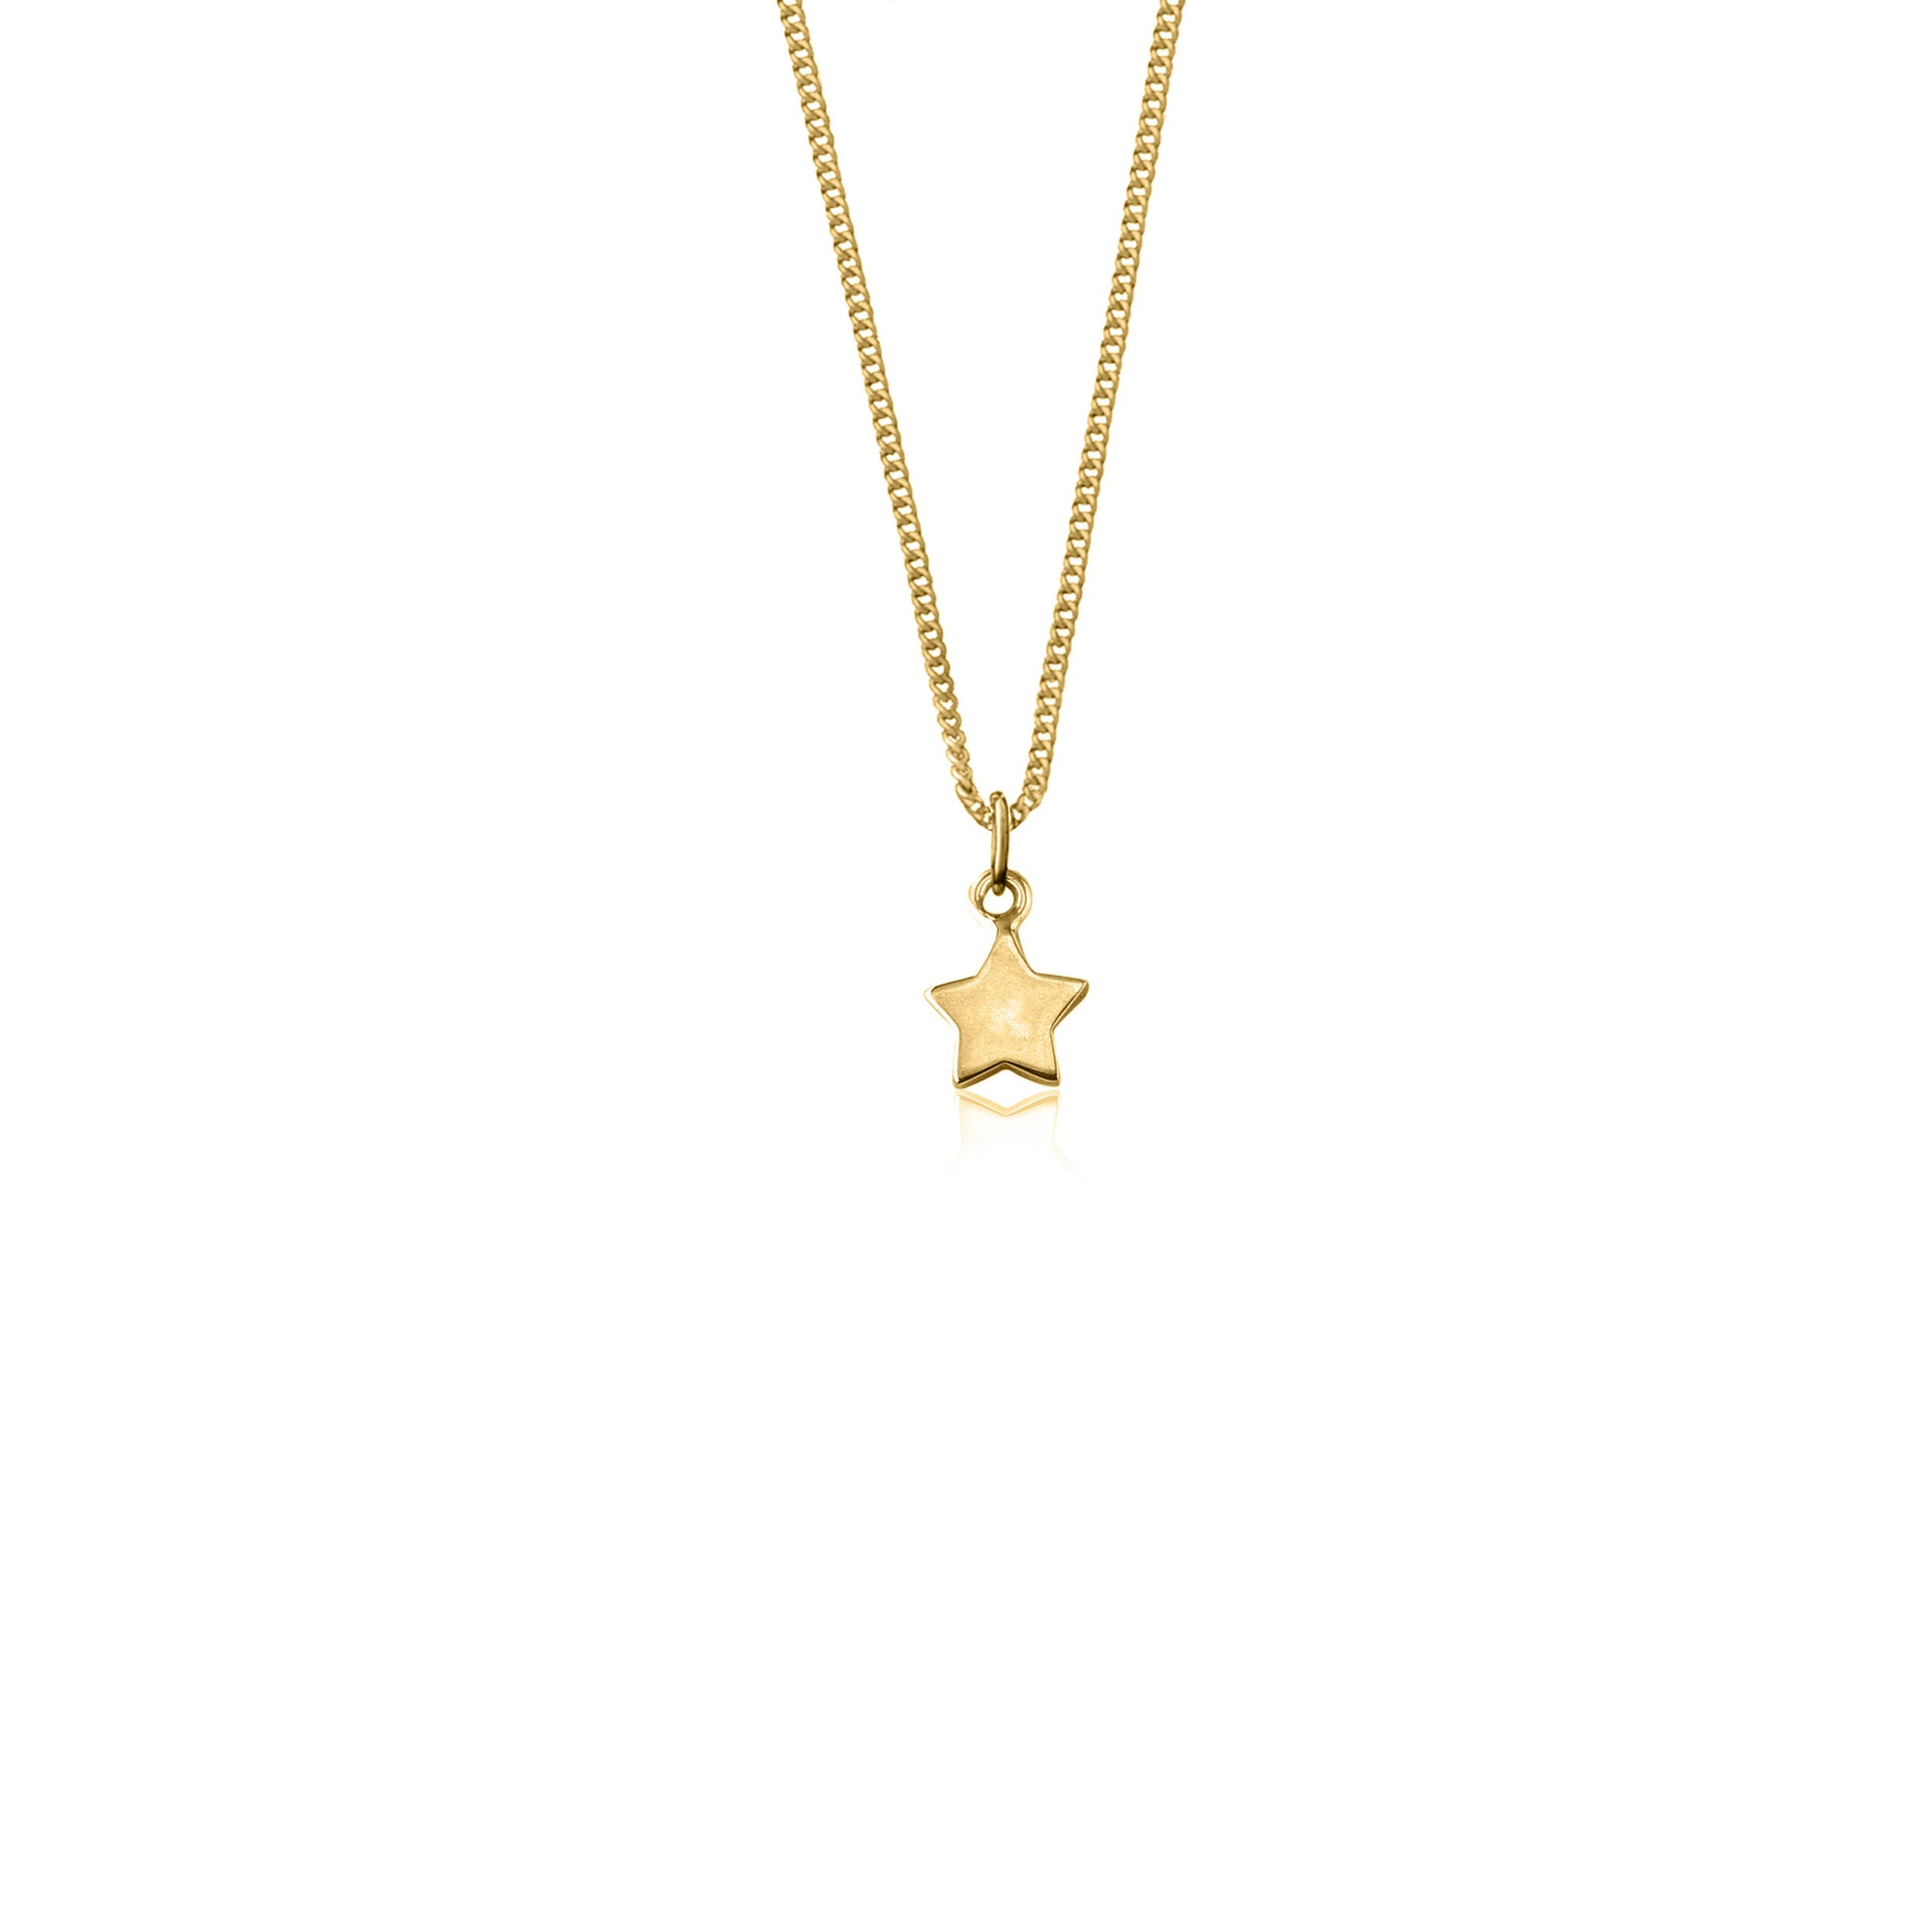 Wish Upon a Star Charm Necklace - Gold